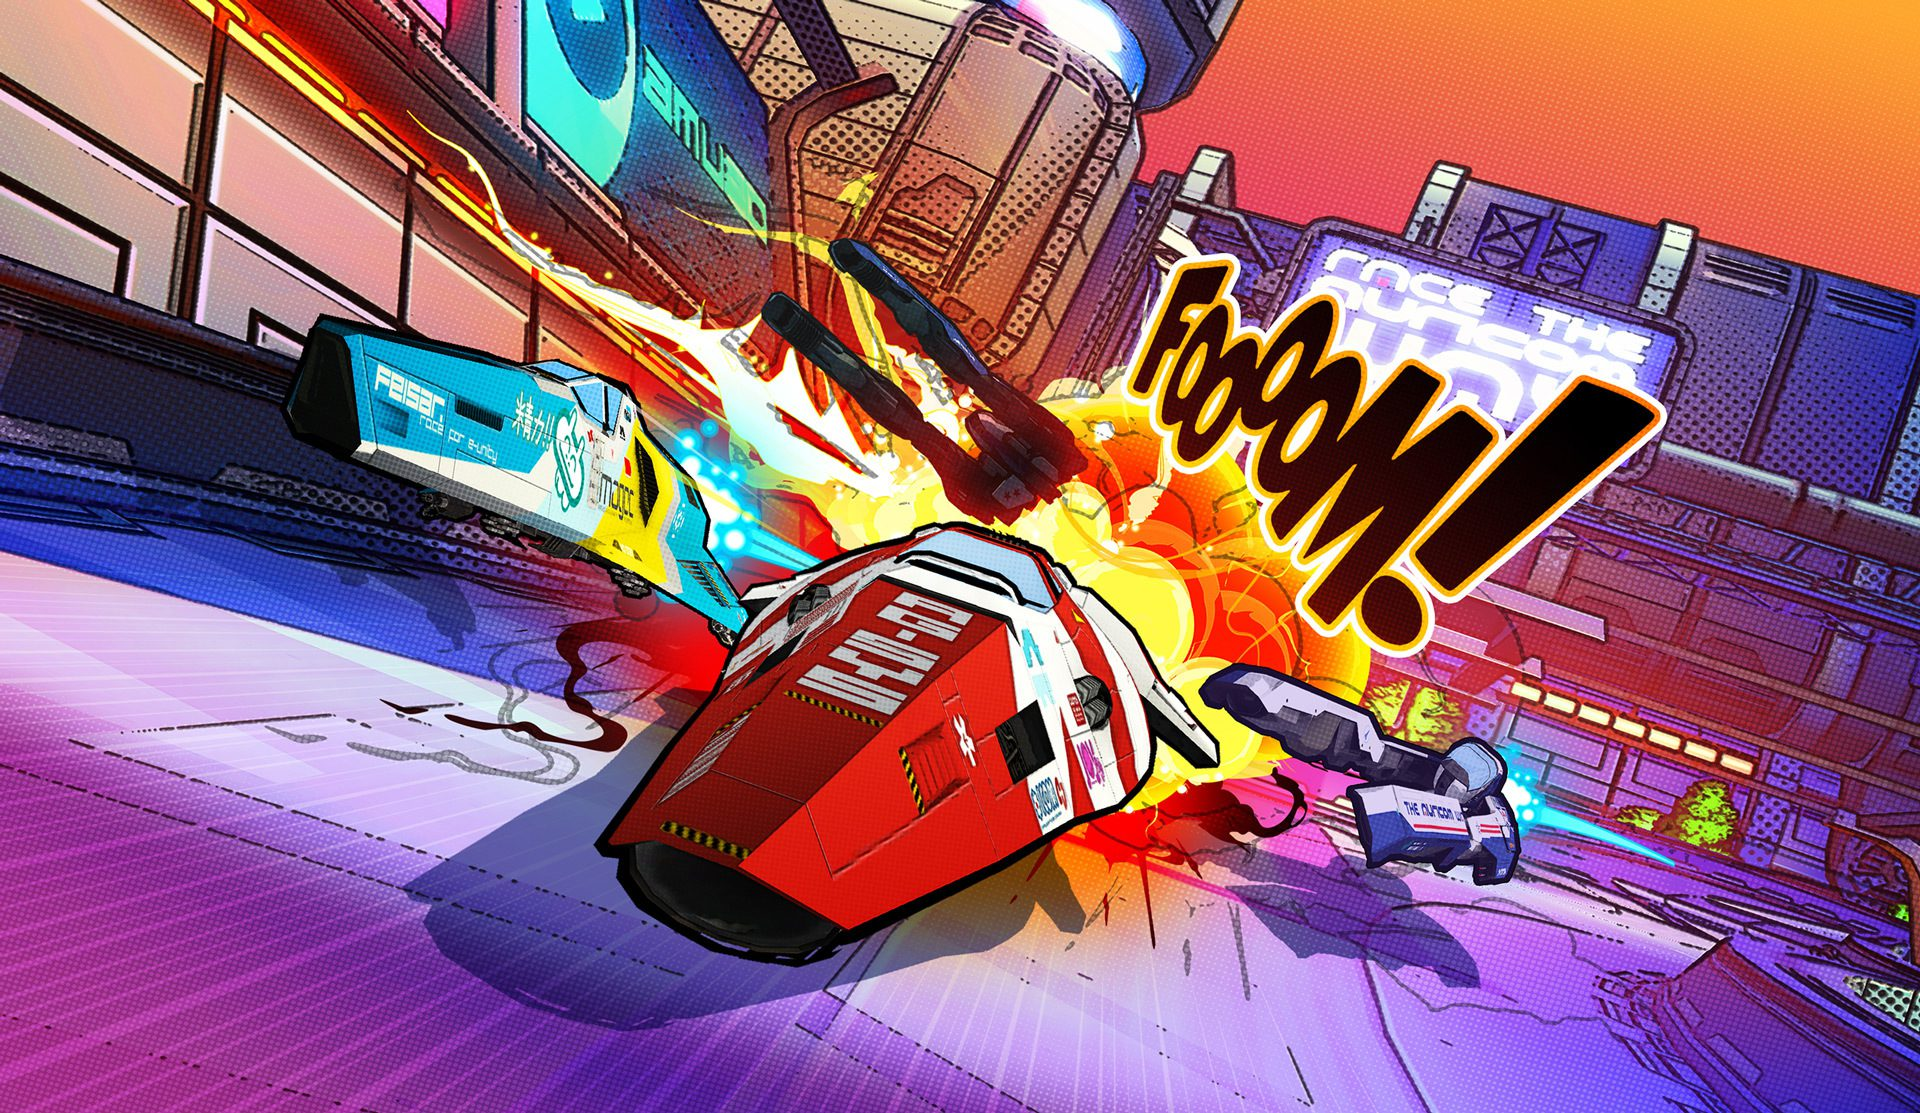 A New Wipeout Game Is Coming, But It's Not What You'd Expect